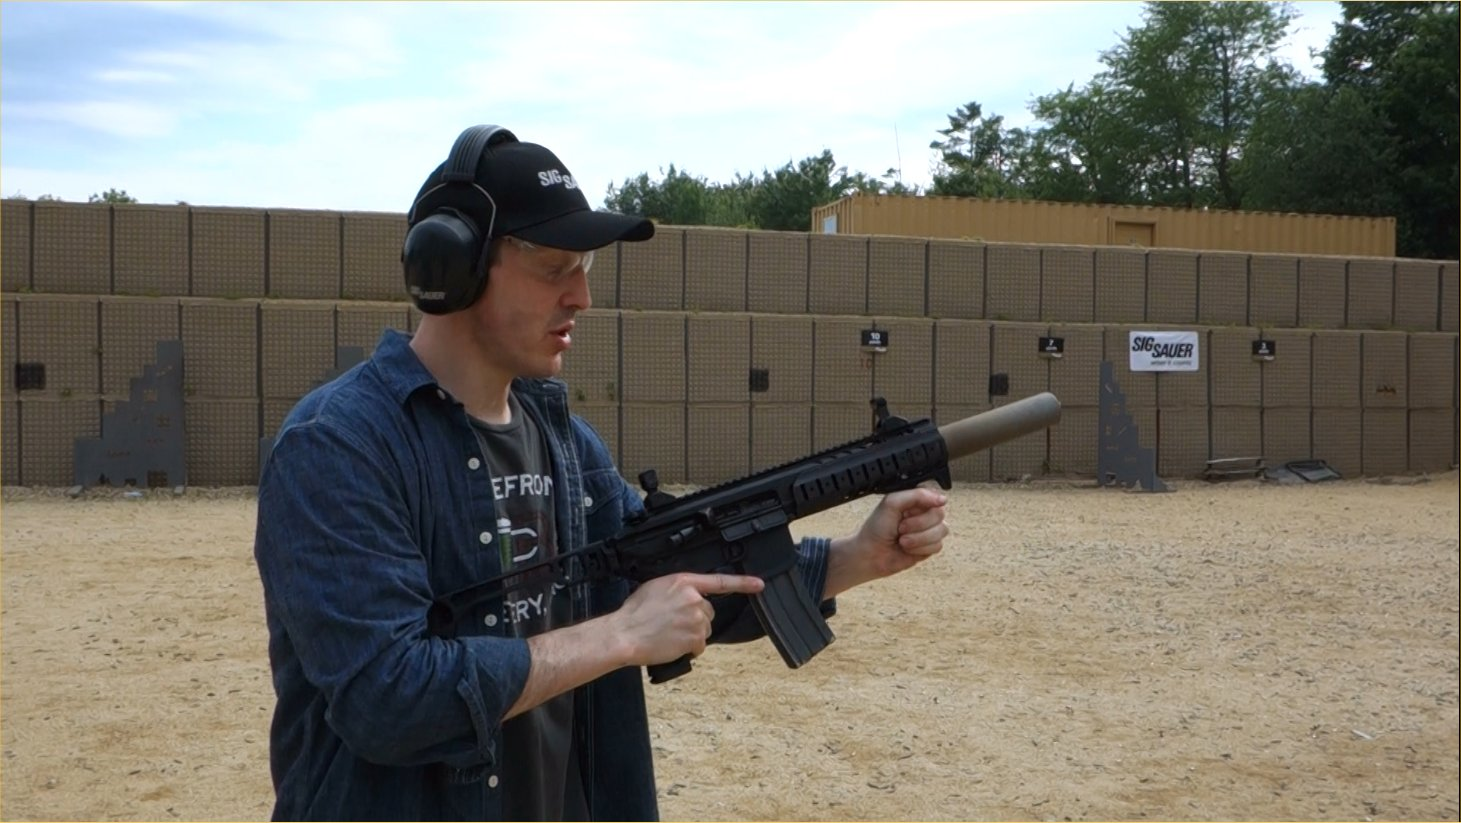 SIG SAUER SIG MCX Multi Caliber AR Assault Rifle Carbine SBR 300 Blackout 300BLK Suppressed David Crane Firing on Full Auto SIG SAUER New Media Writers Event DefenseReview.com DR 3 SIG MCX LVAW (Low Visibility Assault Weapon) Black Mamba Suppressed 300 Blackout (300BLK) Piston AR Assault SBR/PDW (Short Barreled Rifle/Personal Defense Weapon) Fired on Full Auto and Semi Auto with Subsonic and Supersonic Ammo During SIG SAUER New Media Writers Event (Video!)